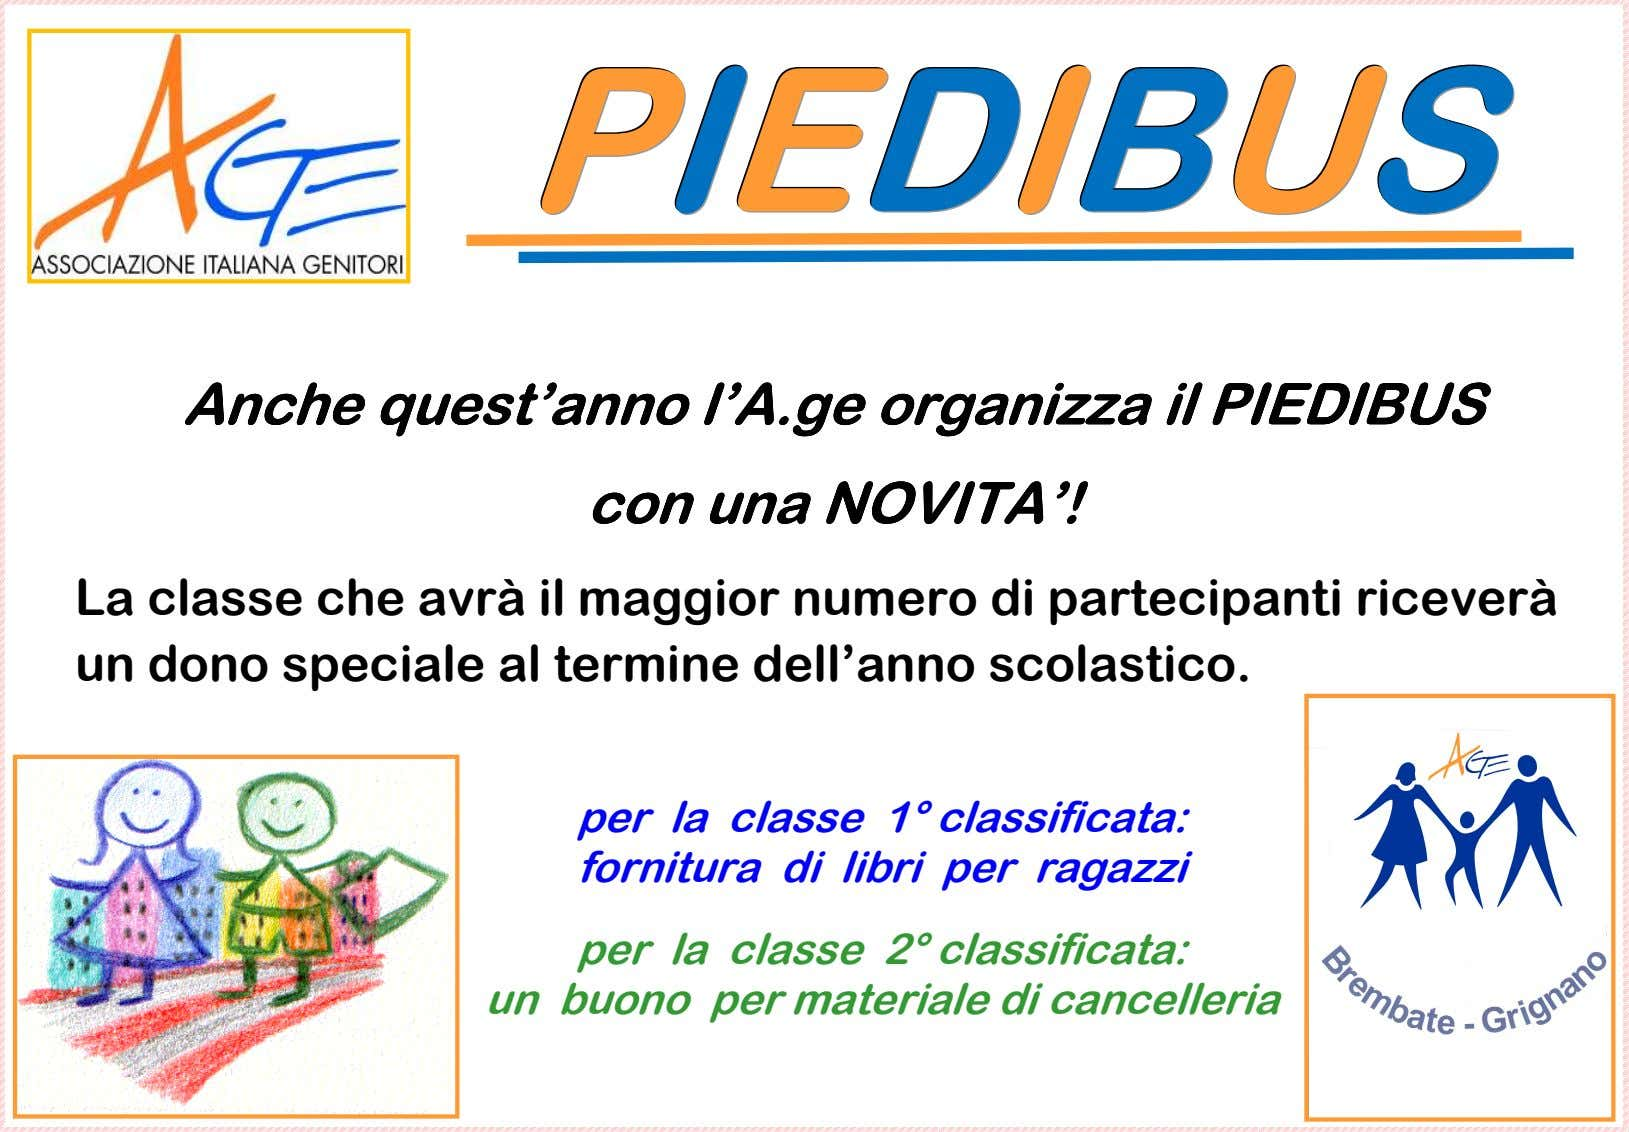 PPPIIIEEEDDDIIIBBBUUUSSS Anche Anche Anche Anche qquest'anno qquest'anno uest'anno uest'anno l'A.ge organizza organizza organizza ilililil PIEDIBUS l'A.ge